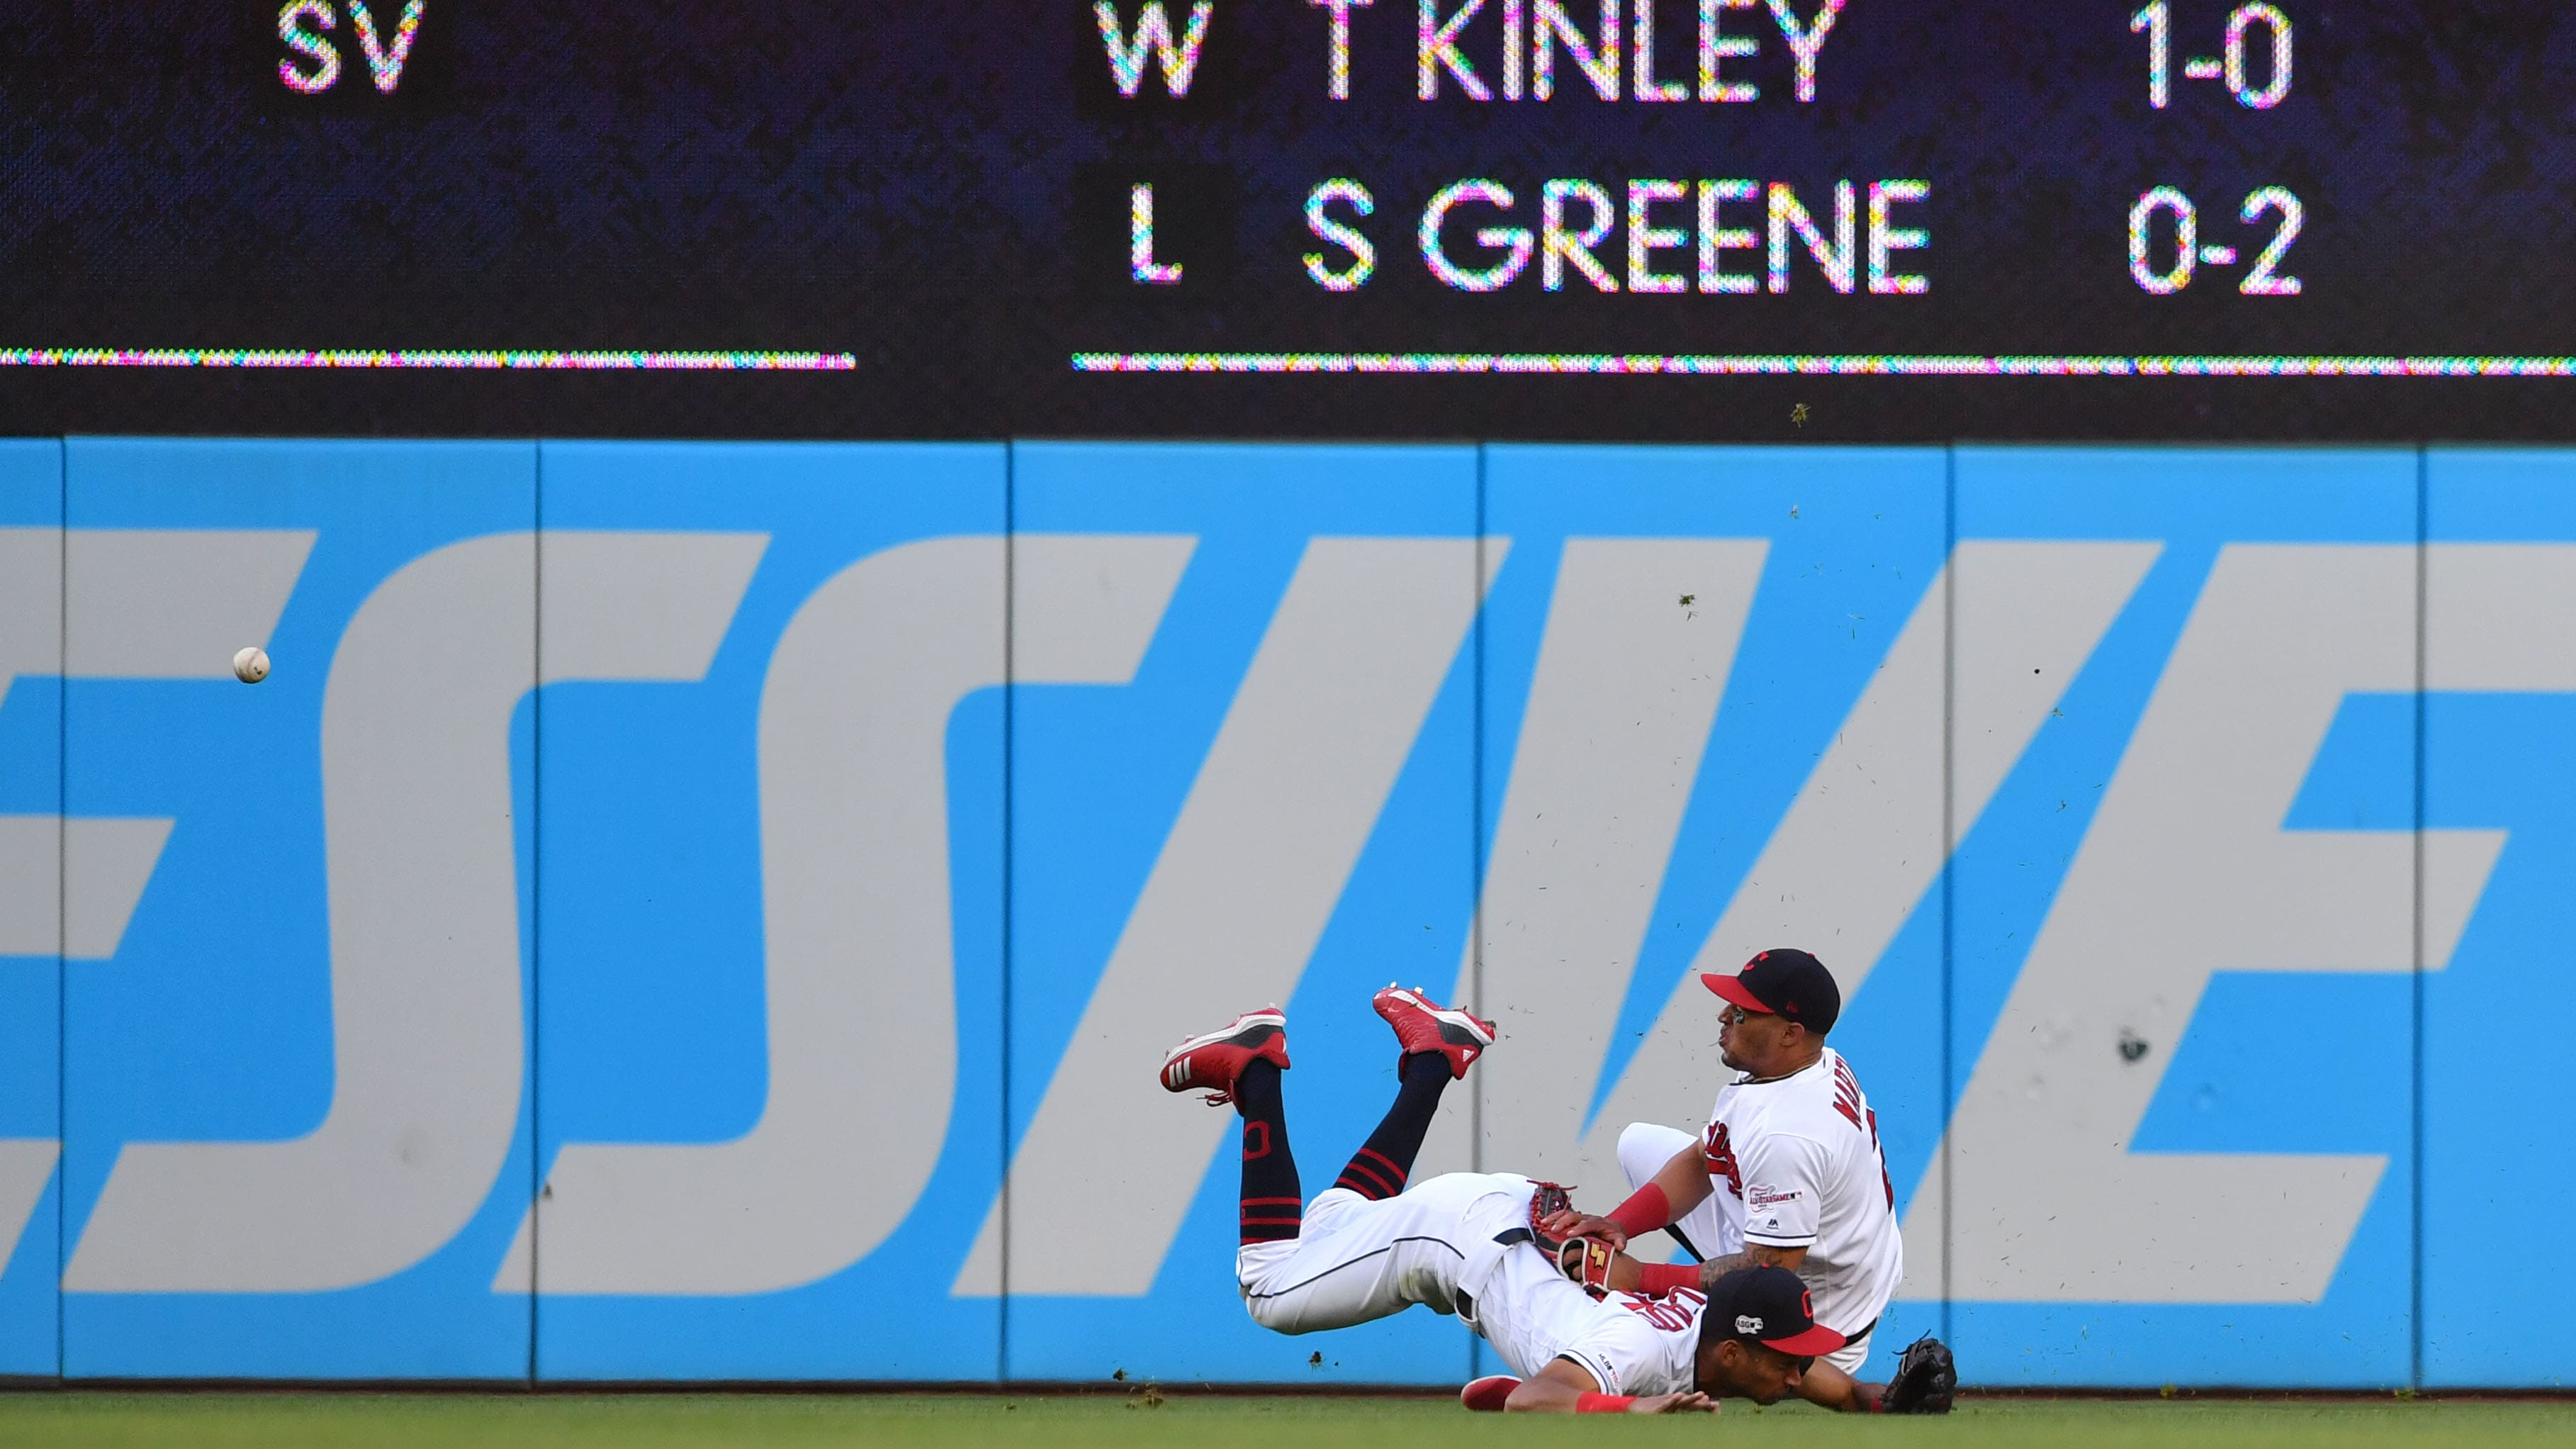 CLEVELAND, OHIO - MAY 23: Left fielder Oscar Mercado #35 of the Cleveland Indians runs into center fielder Leonys Martin #2  on a fly ball off the bat of Kevin Kiermaier of the Tampa Bay Rays in the sixth inning at Progressive Field on May 23, 2019 in Cleveland, Ohio. (Photo by Jason Miller/Getty Images)